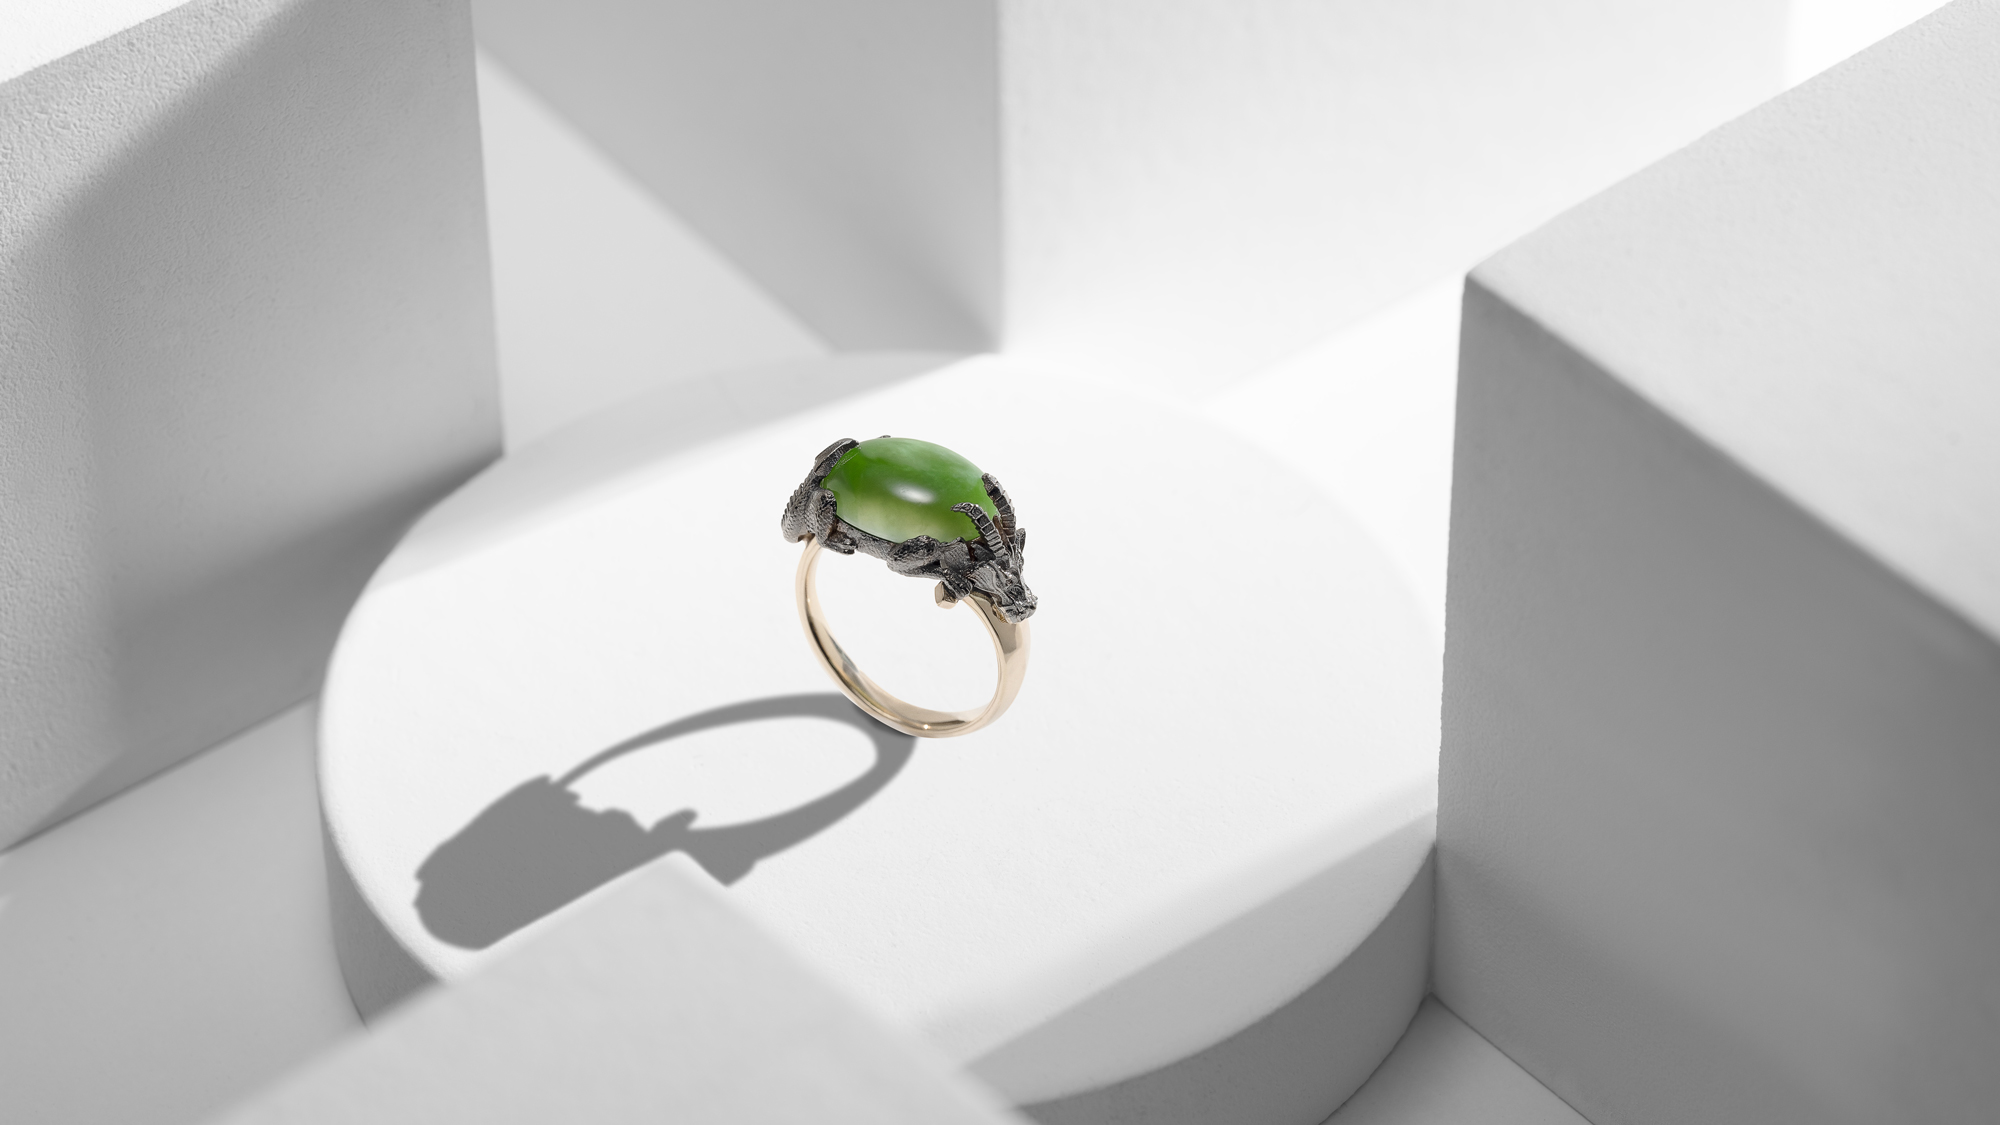 Wenbo Zhao-Creative Photography-Jewllery Photography with Object Maker-Dragon Ring